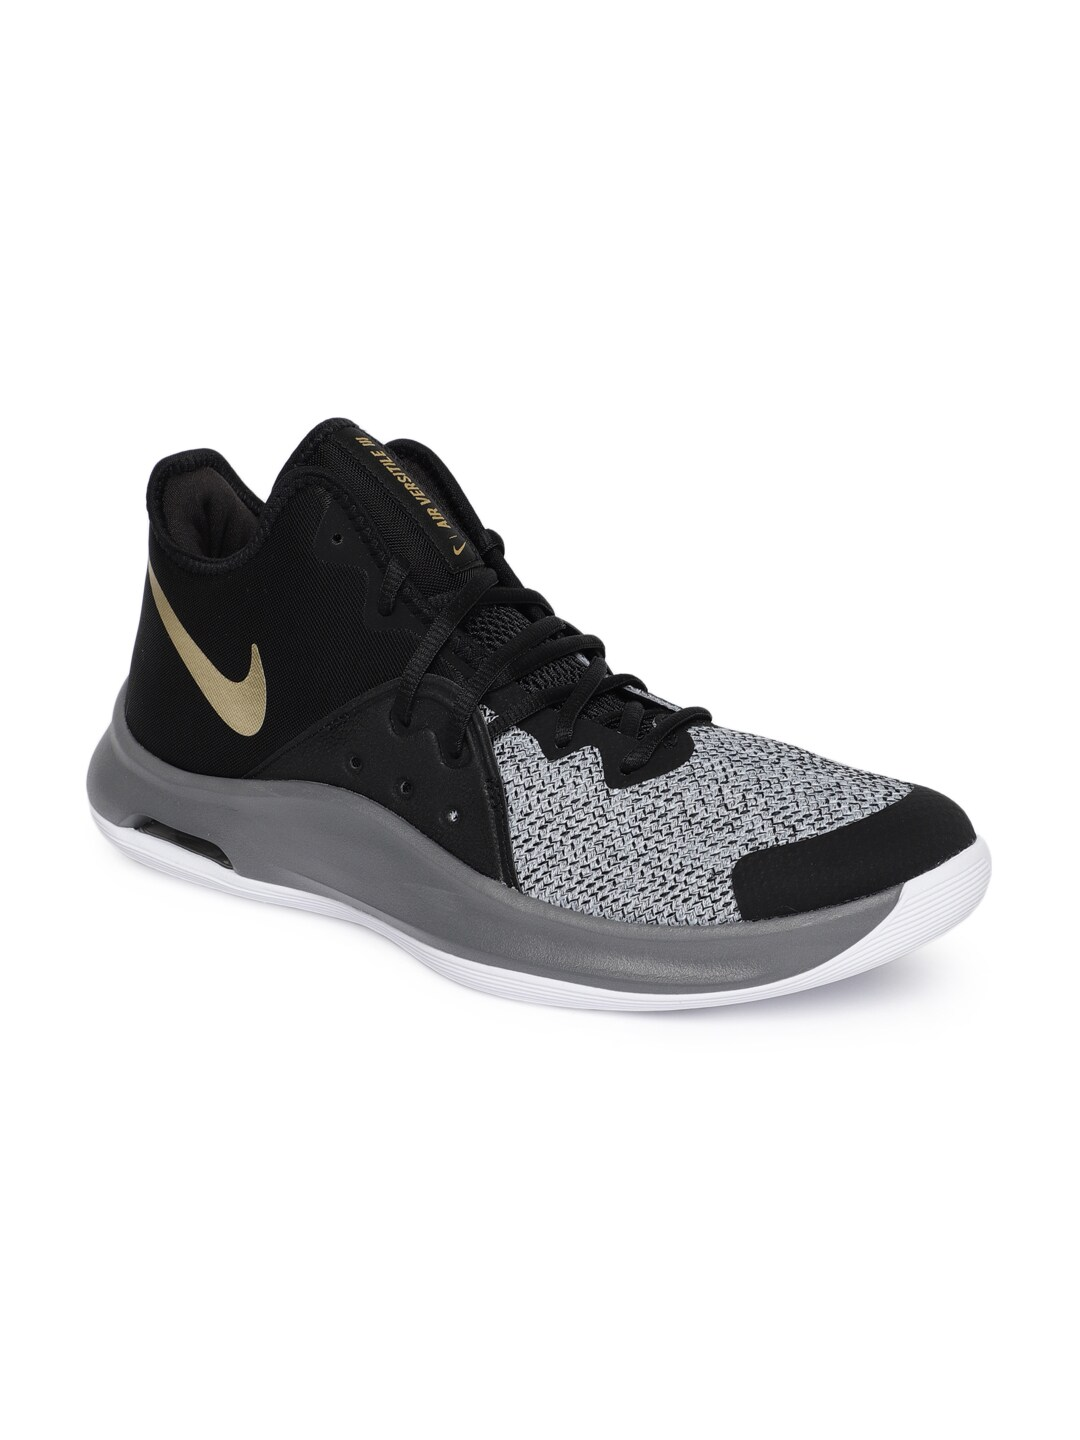 low priced 40628 fb8a8 Nike Shoes for Men - Buy Men s Nike Shoes Online   Myntra